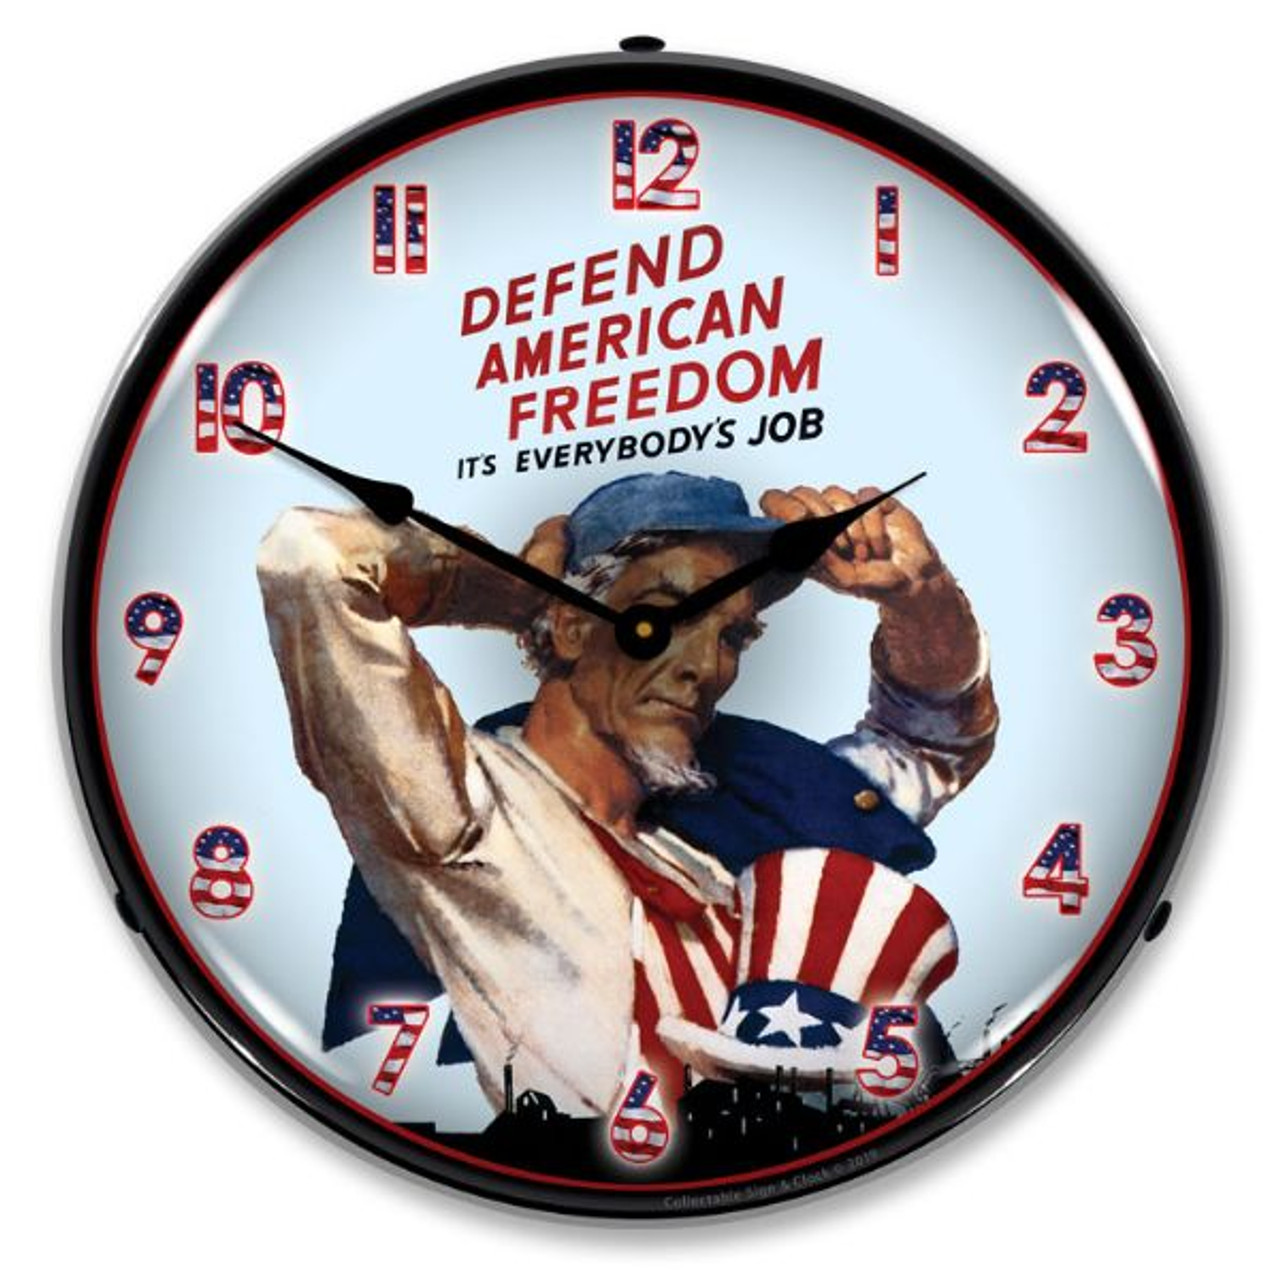 American Freedom LED Lighted Wall Clock 14 x 14 Inches